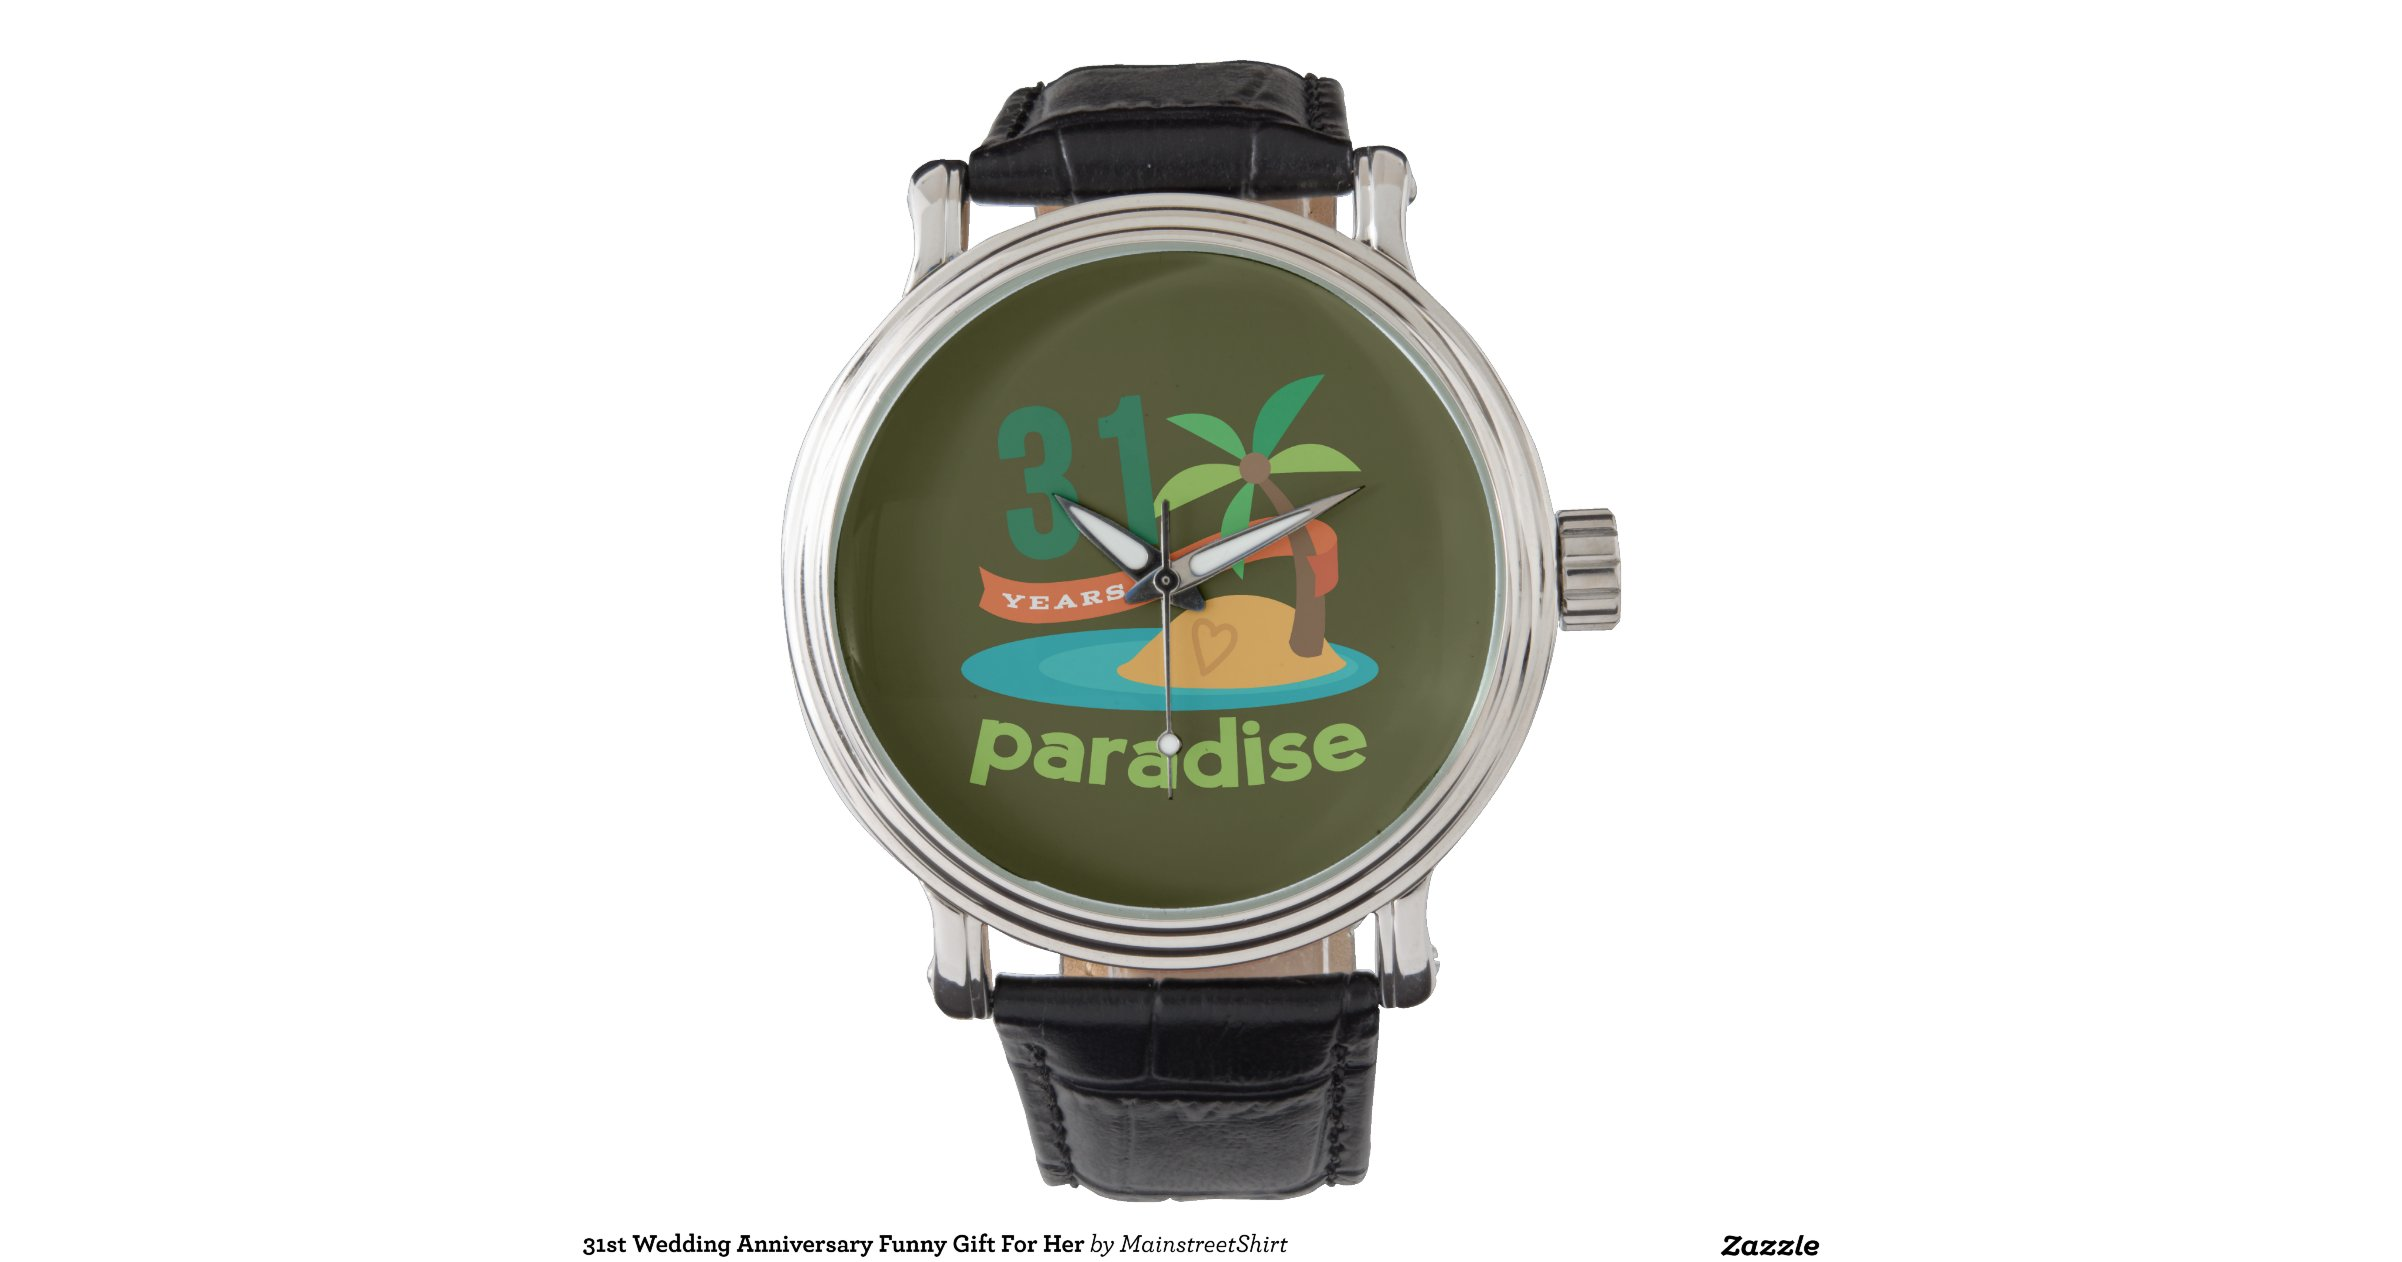 31st Wedding Anniversary Gifts: 31st_wedding_anniversary_funny_gift_for_her_wristwatch